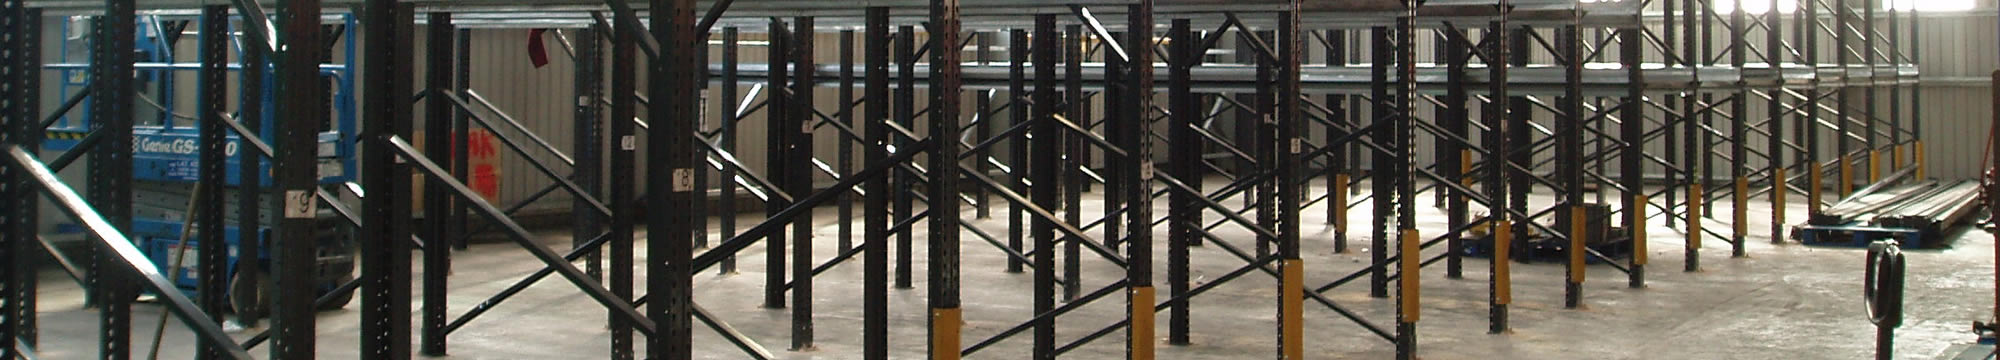 banner-Shelving-&-Pallet-Racking